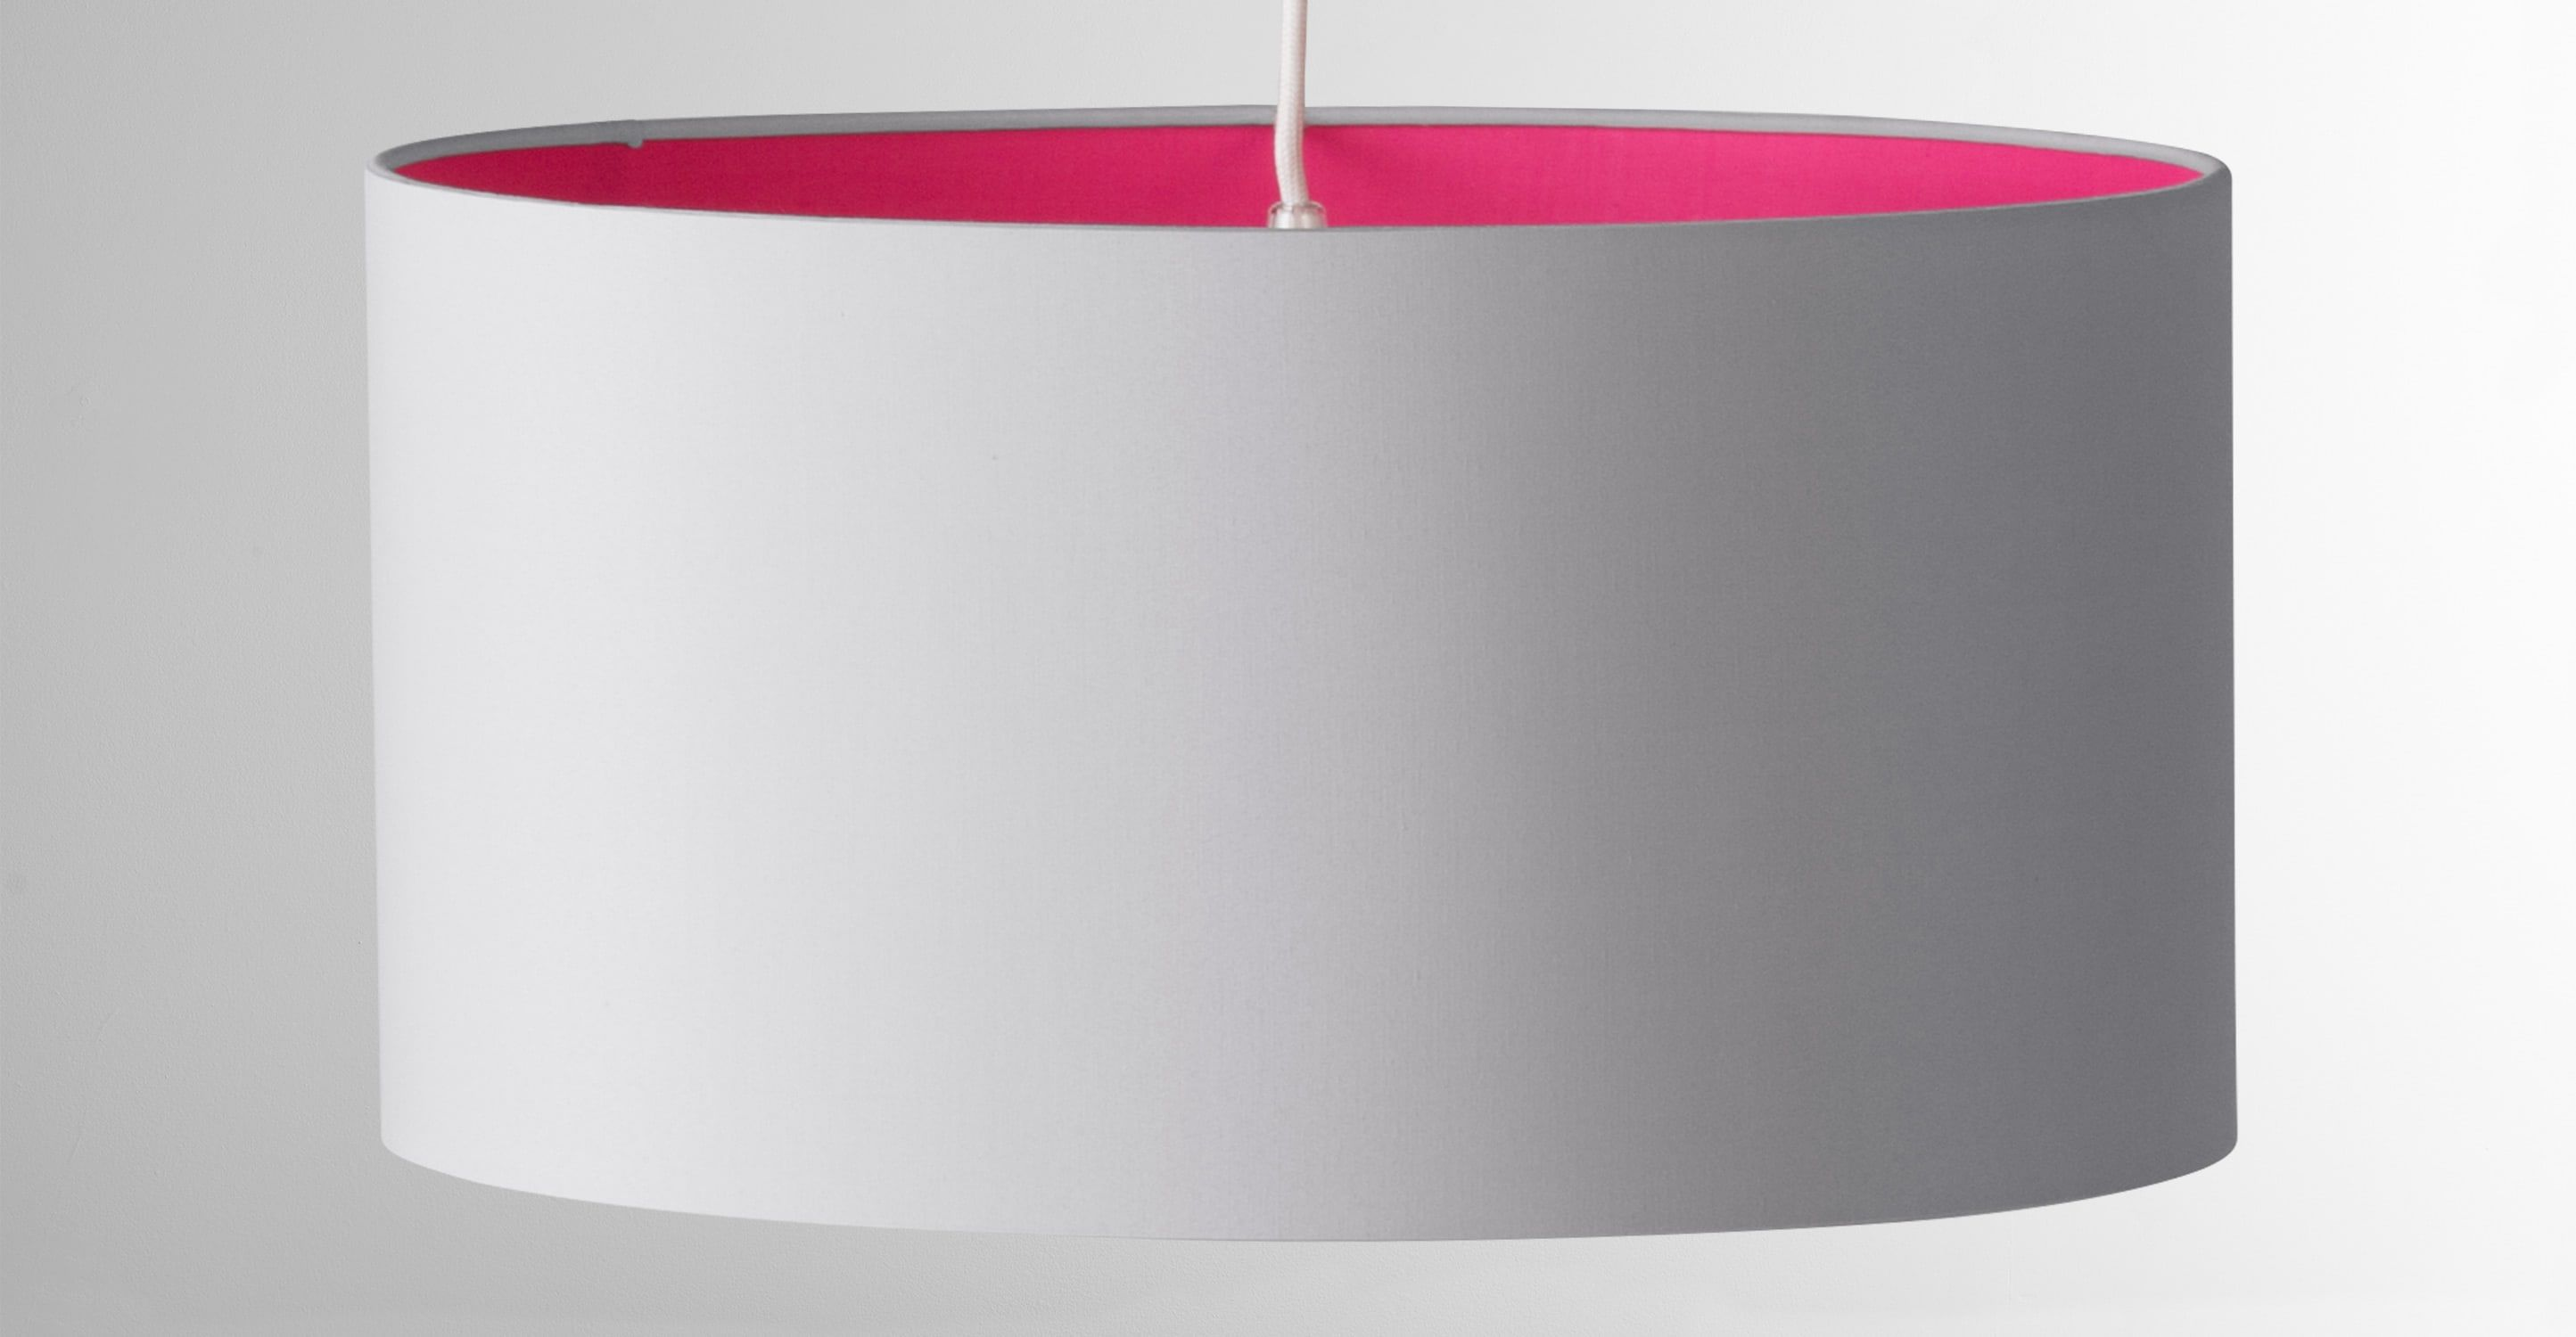 Meisjeskamer Lamp May Hanglampenkap Neon Roze Lampen Playroom Shades